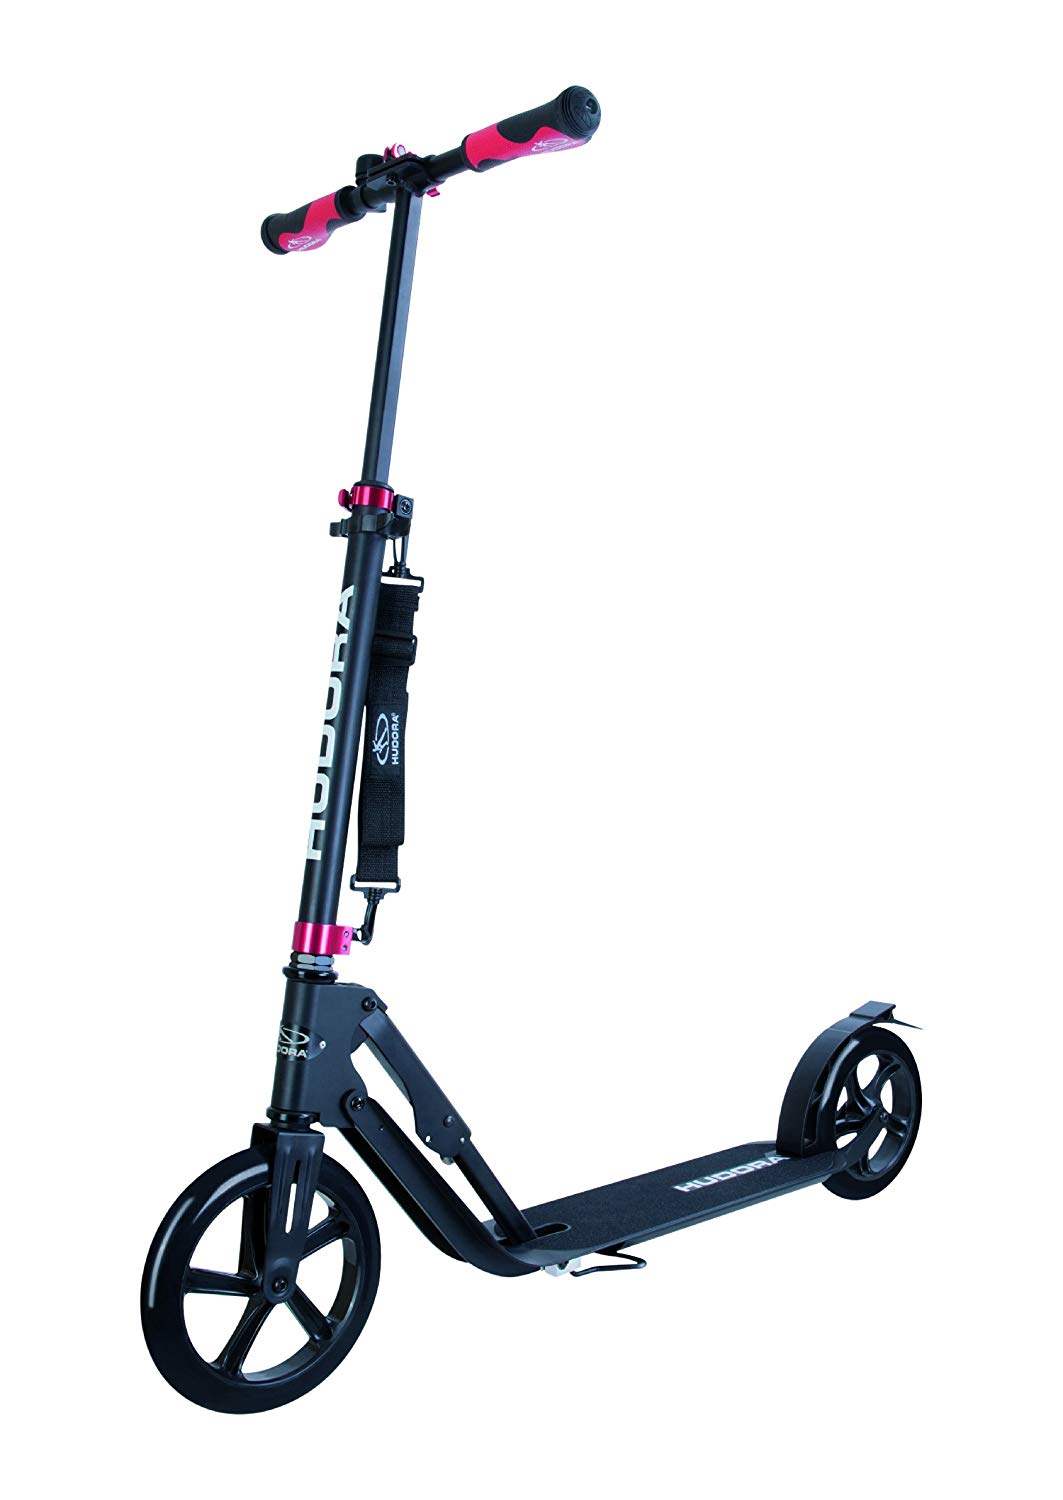 HUDORA 230 Adult Scooters Foldable Adjustable Kick Scooter Aluminum Outdoor use